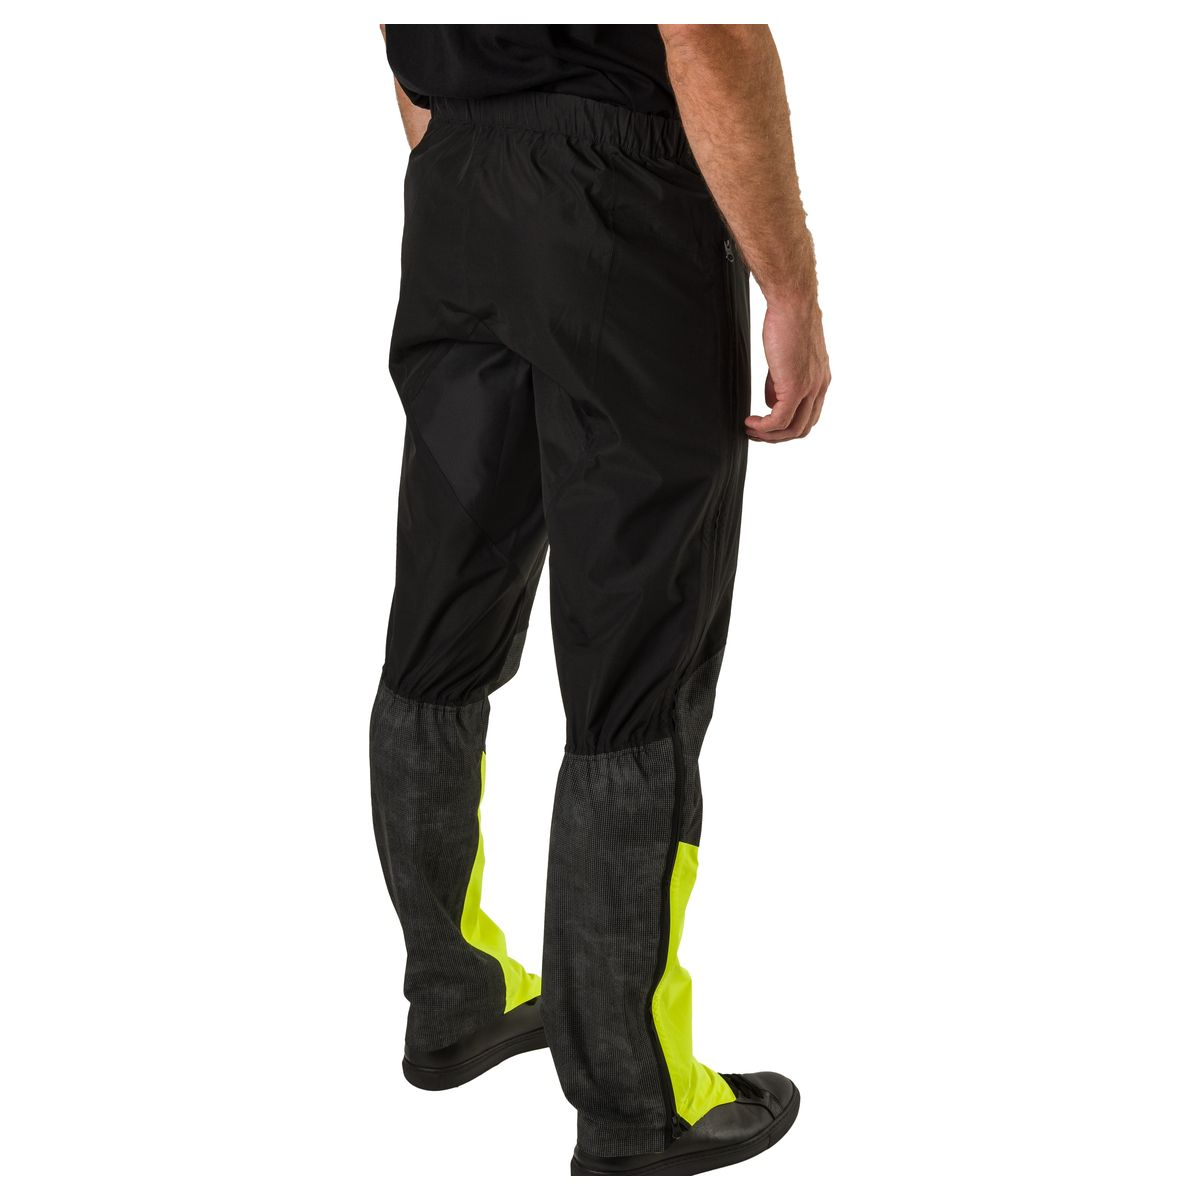 Tech Regenbroek Commuter Heren Hi-vis & Reflection fit example